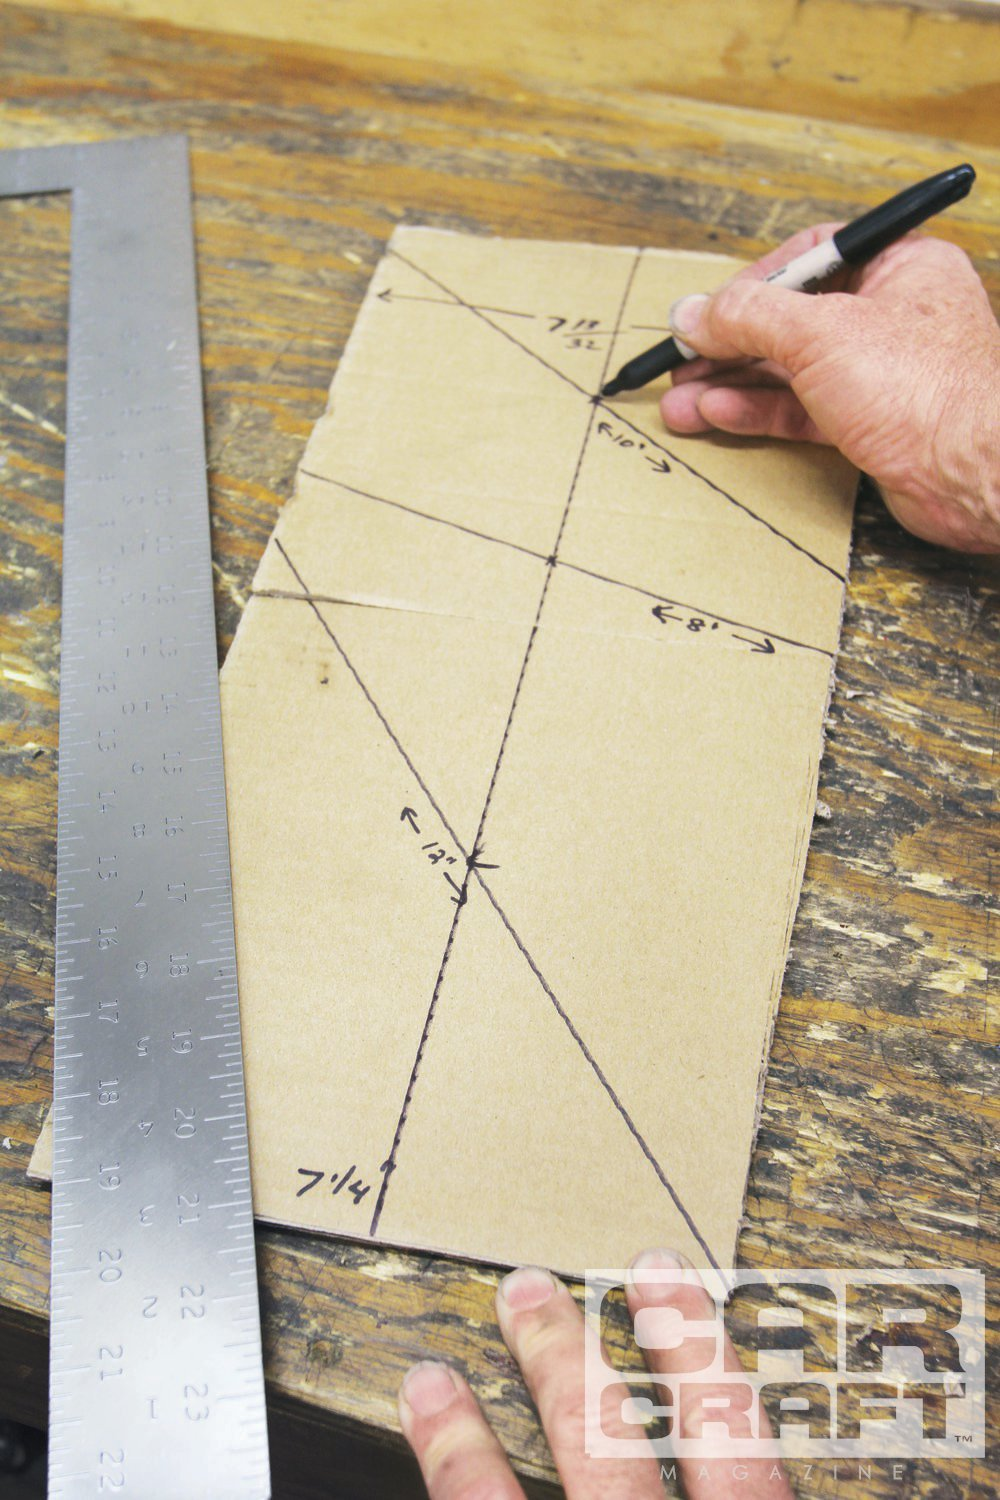 Want to find the exact center of a work piece that may not be square? Straight across may be an odd number like 47⁄32 inch that is cumbersome to determine the exact mid-point. A machinist showed us a much simpler technique. Lay the straight edge at an angle with the length set to a round number, like 8 inches. Halfway is 4 inches—mark that point. Move to the other end of the work piece and establish an angle with say 10 inches across and mark the center at 5 inches. Those two marks now position the exact center of the piece. Simple, yes?